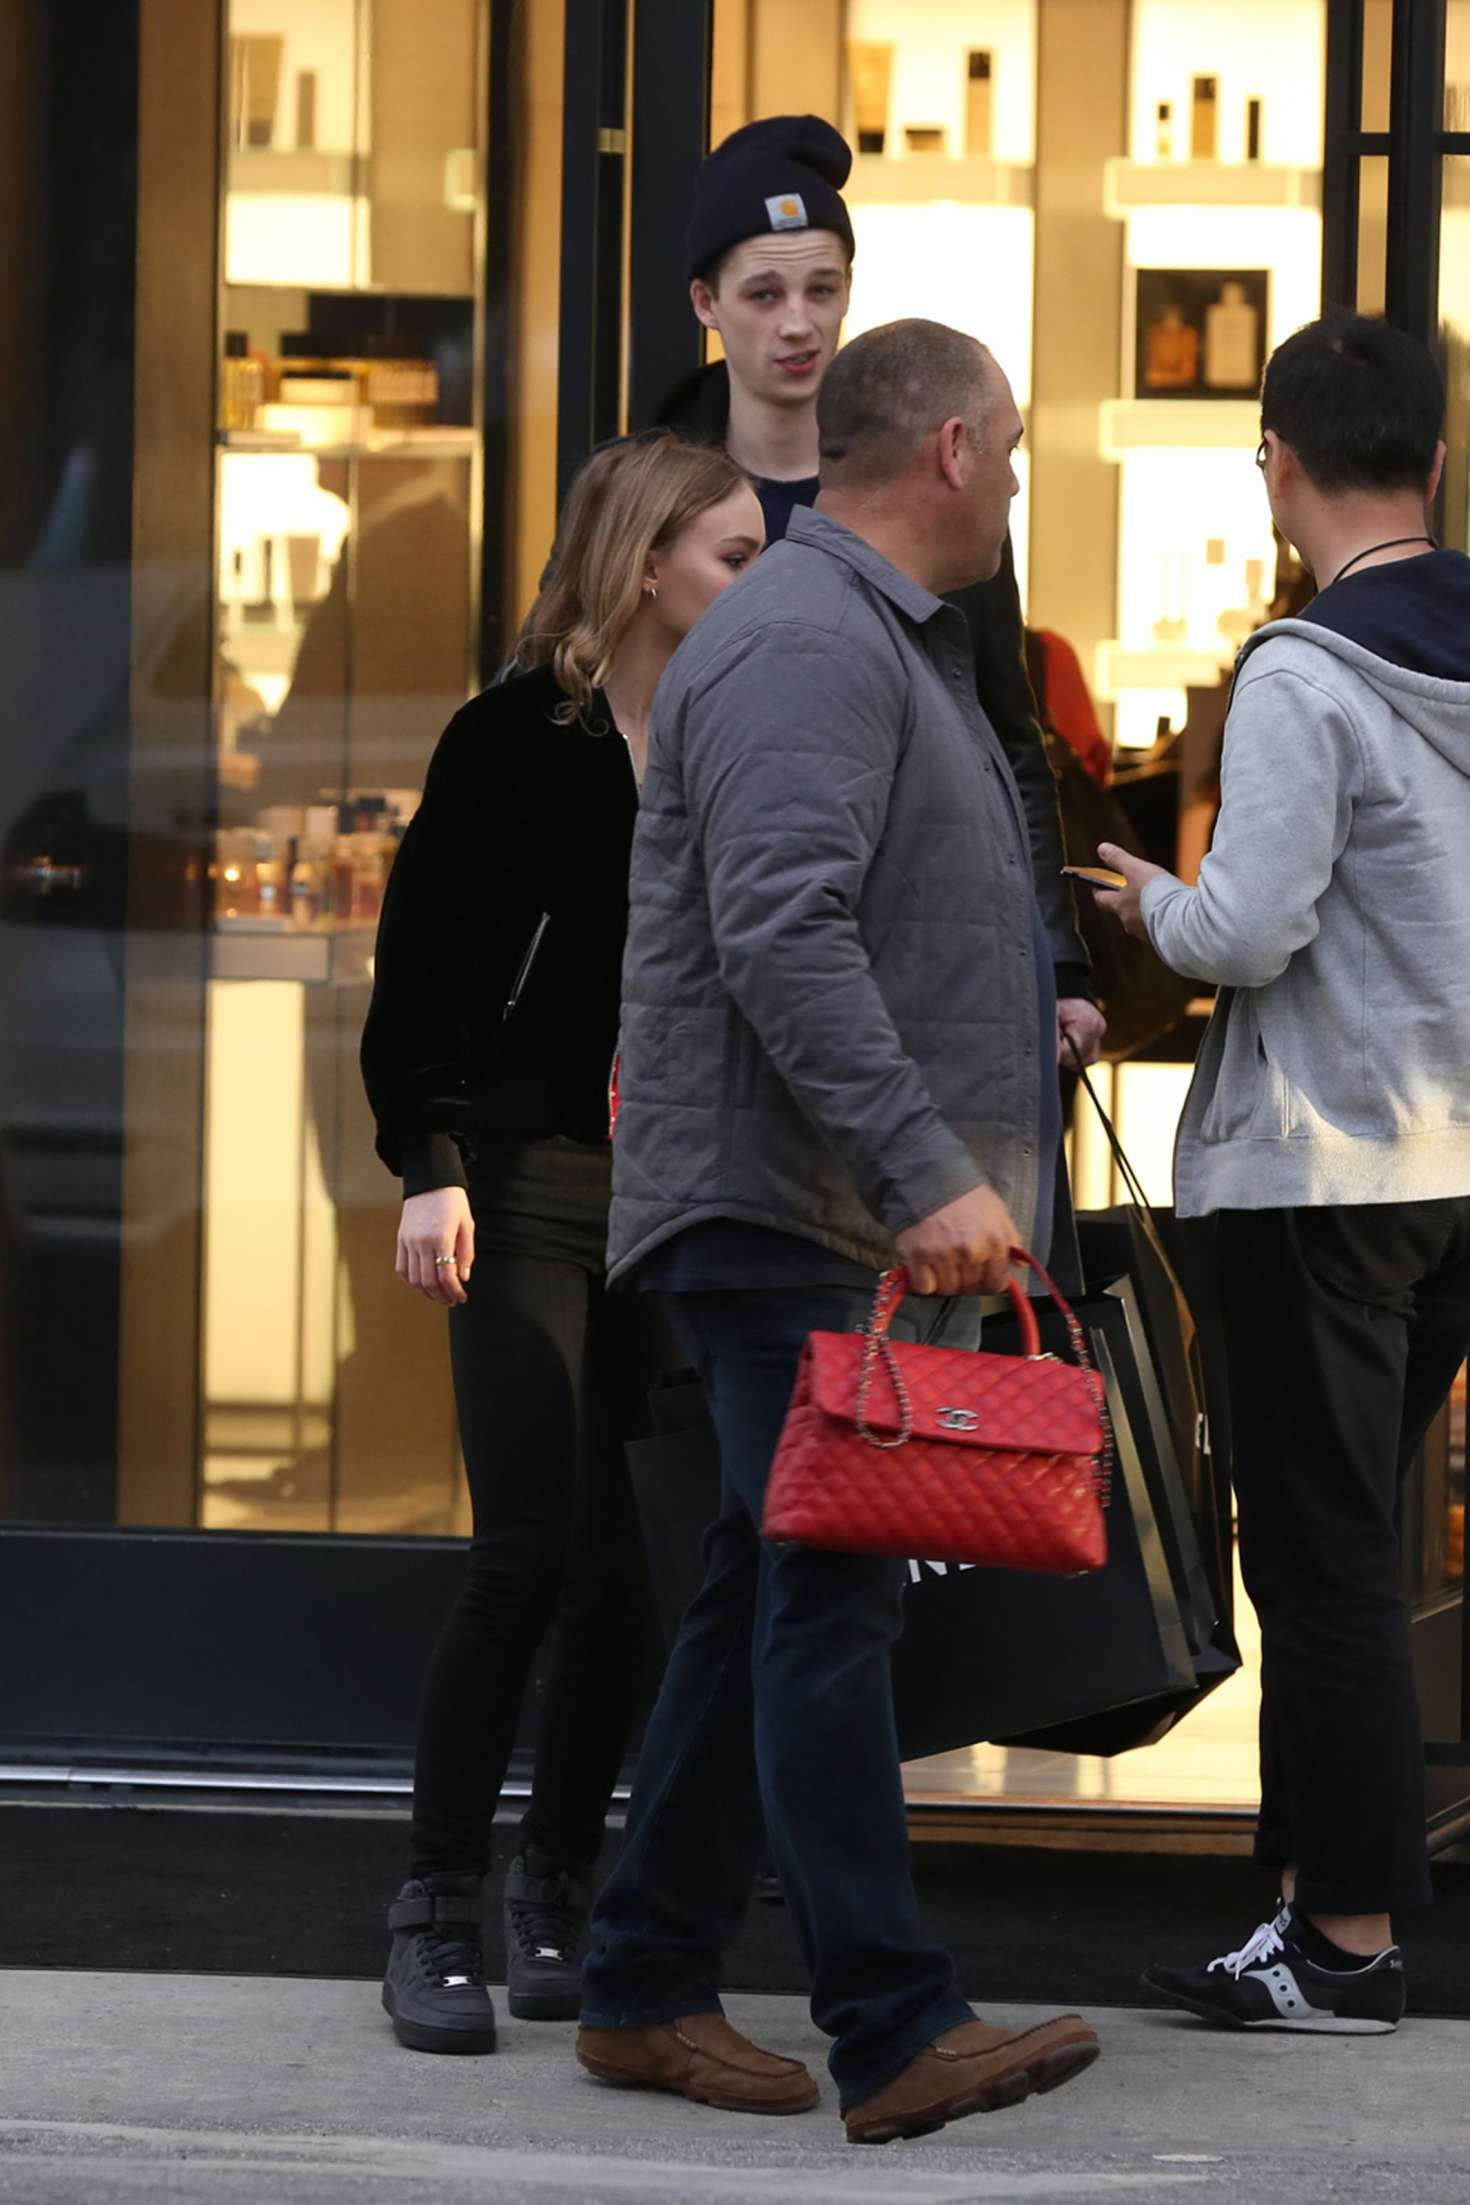 Lily rose depp leaves chanel after a shopping spree in beverly hills - 2019 year